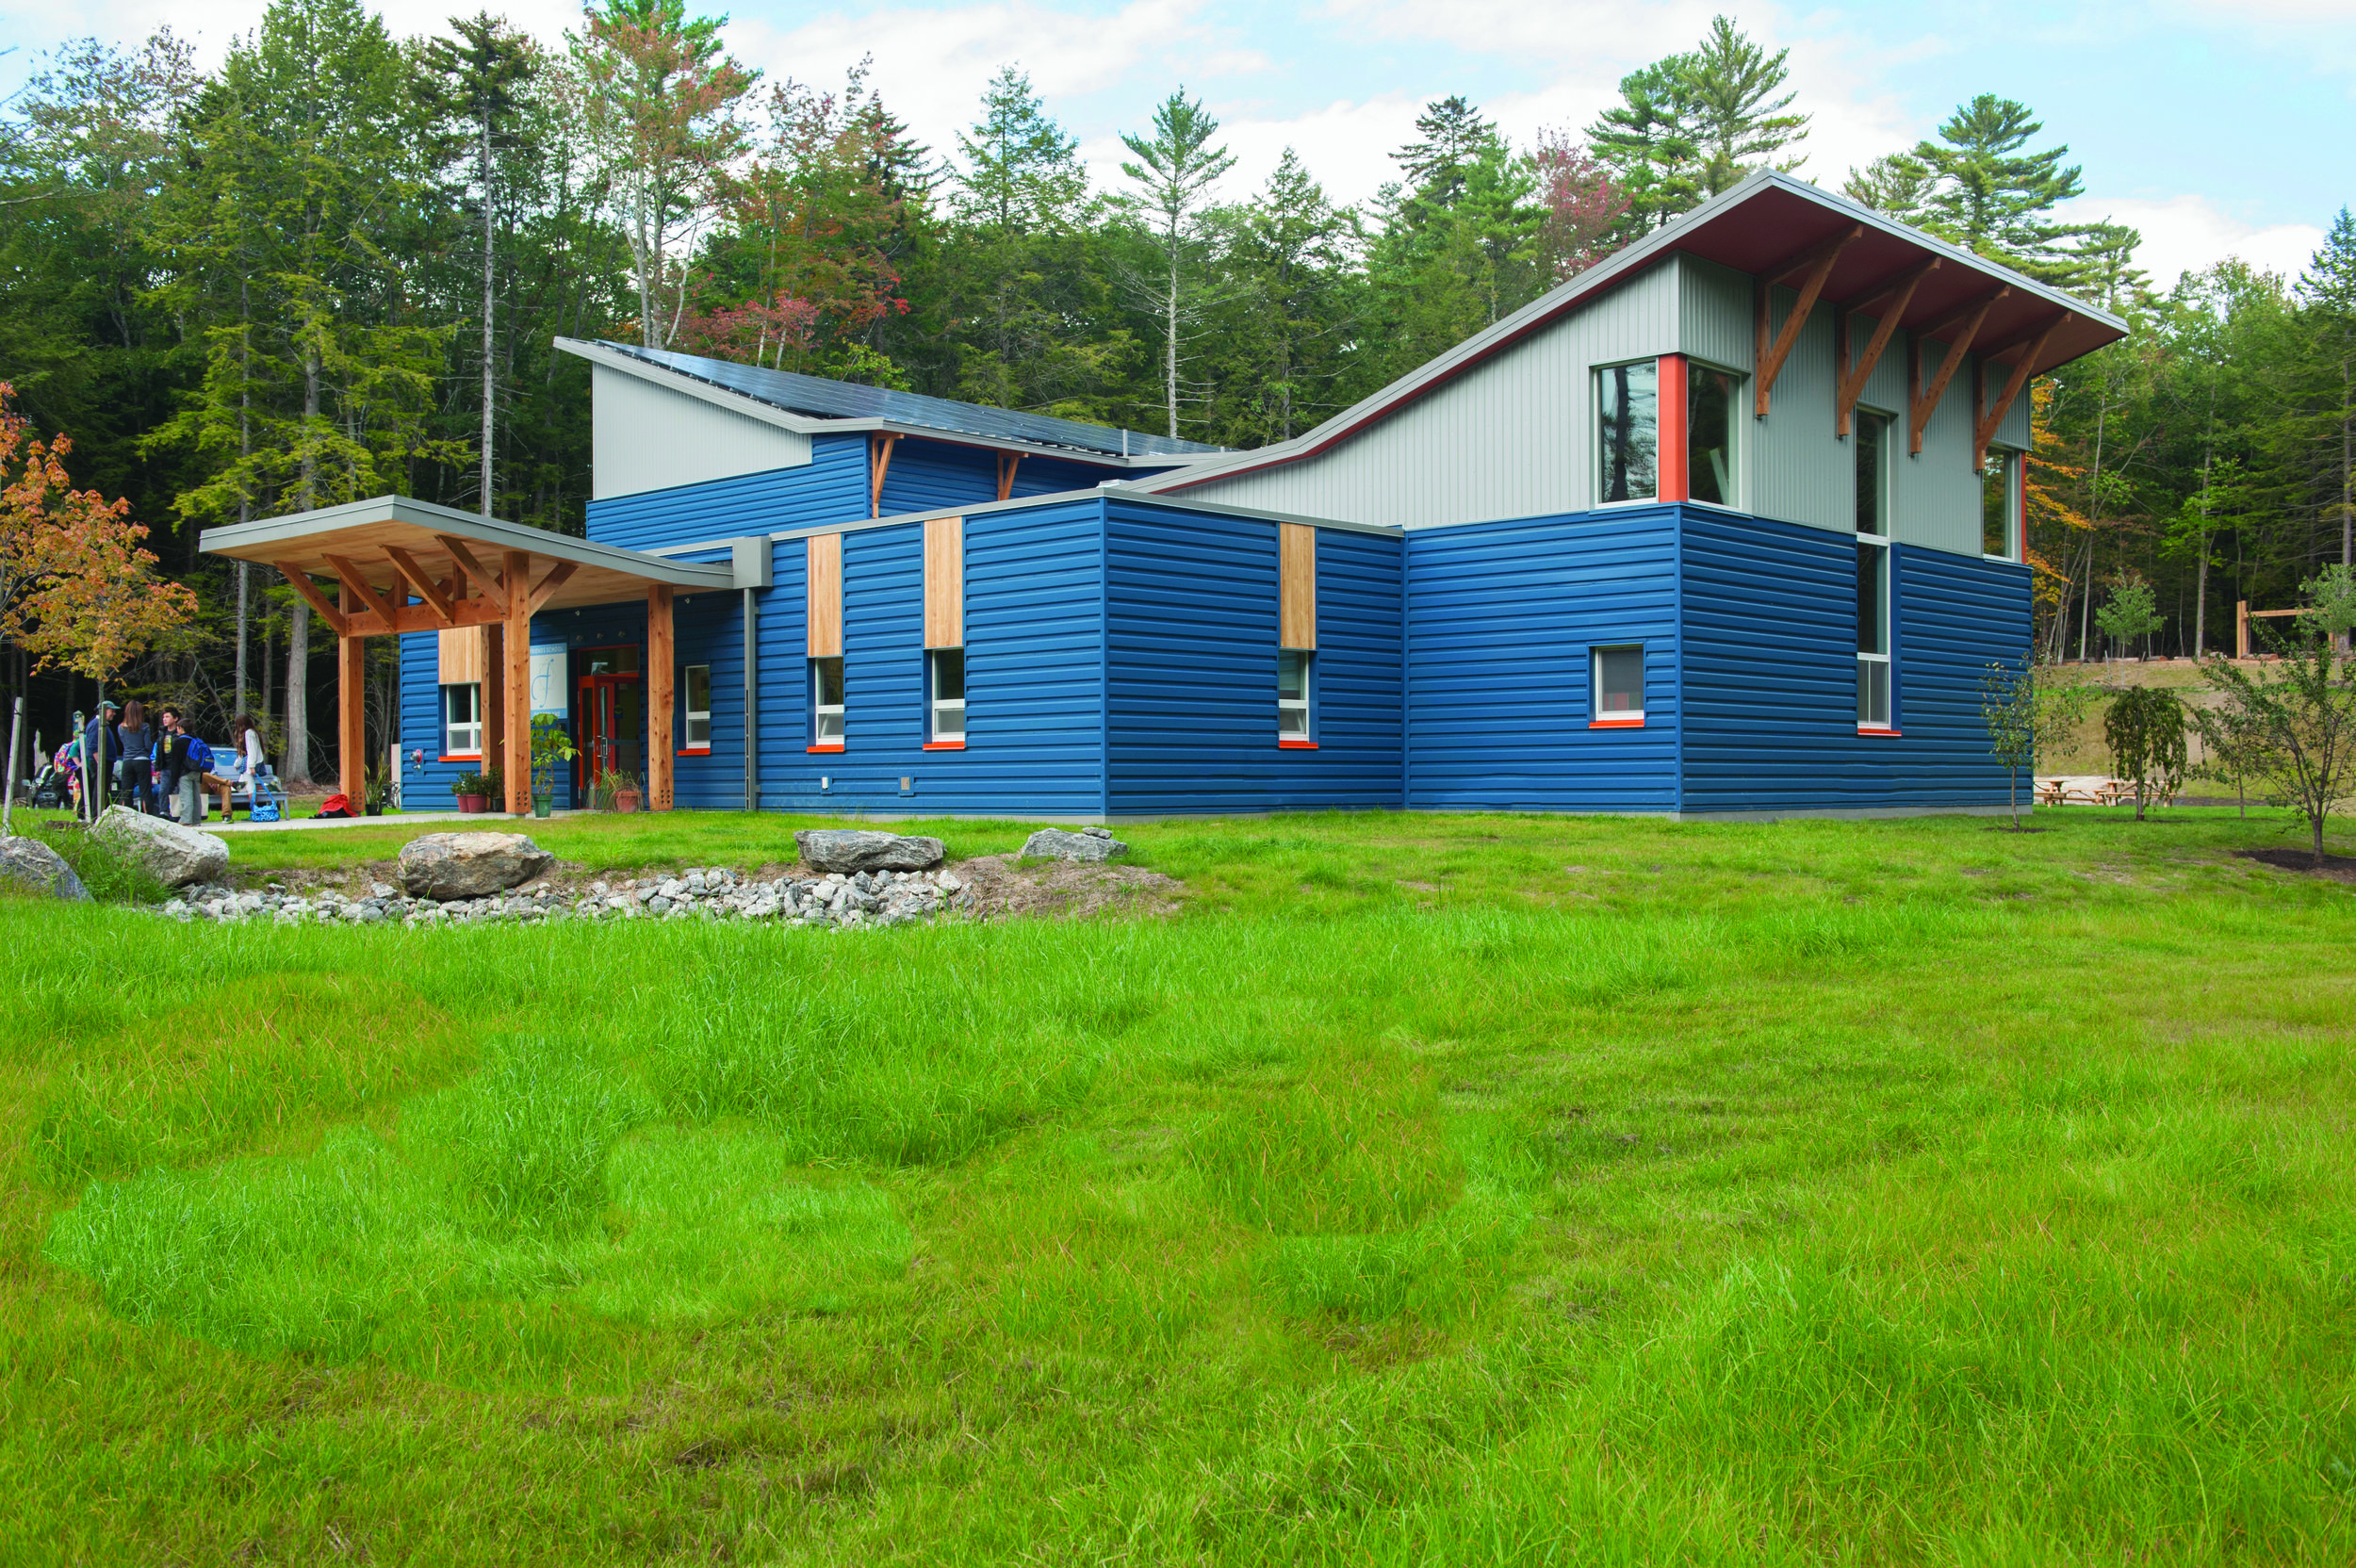 Friends School of Portland, completed in August, 2015 in Cumberland, is the first passive house school in Maine and the fourth in the country. FSP is net zero with a solar array that offsets all energy usage. Photo Naomi Beal